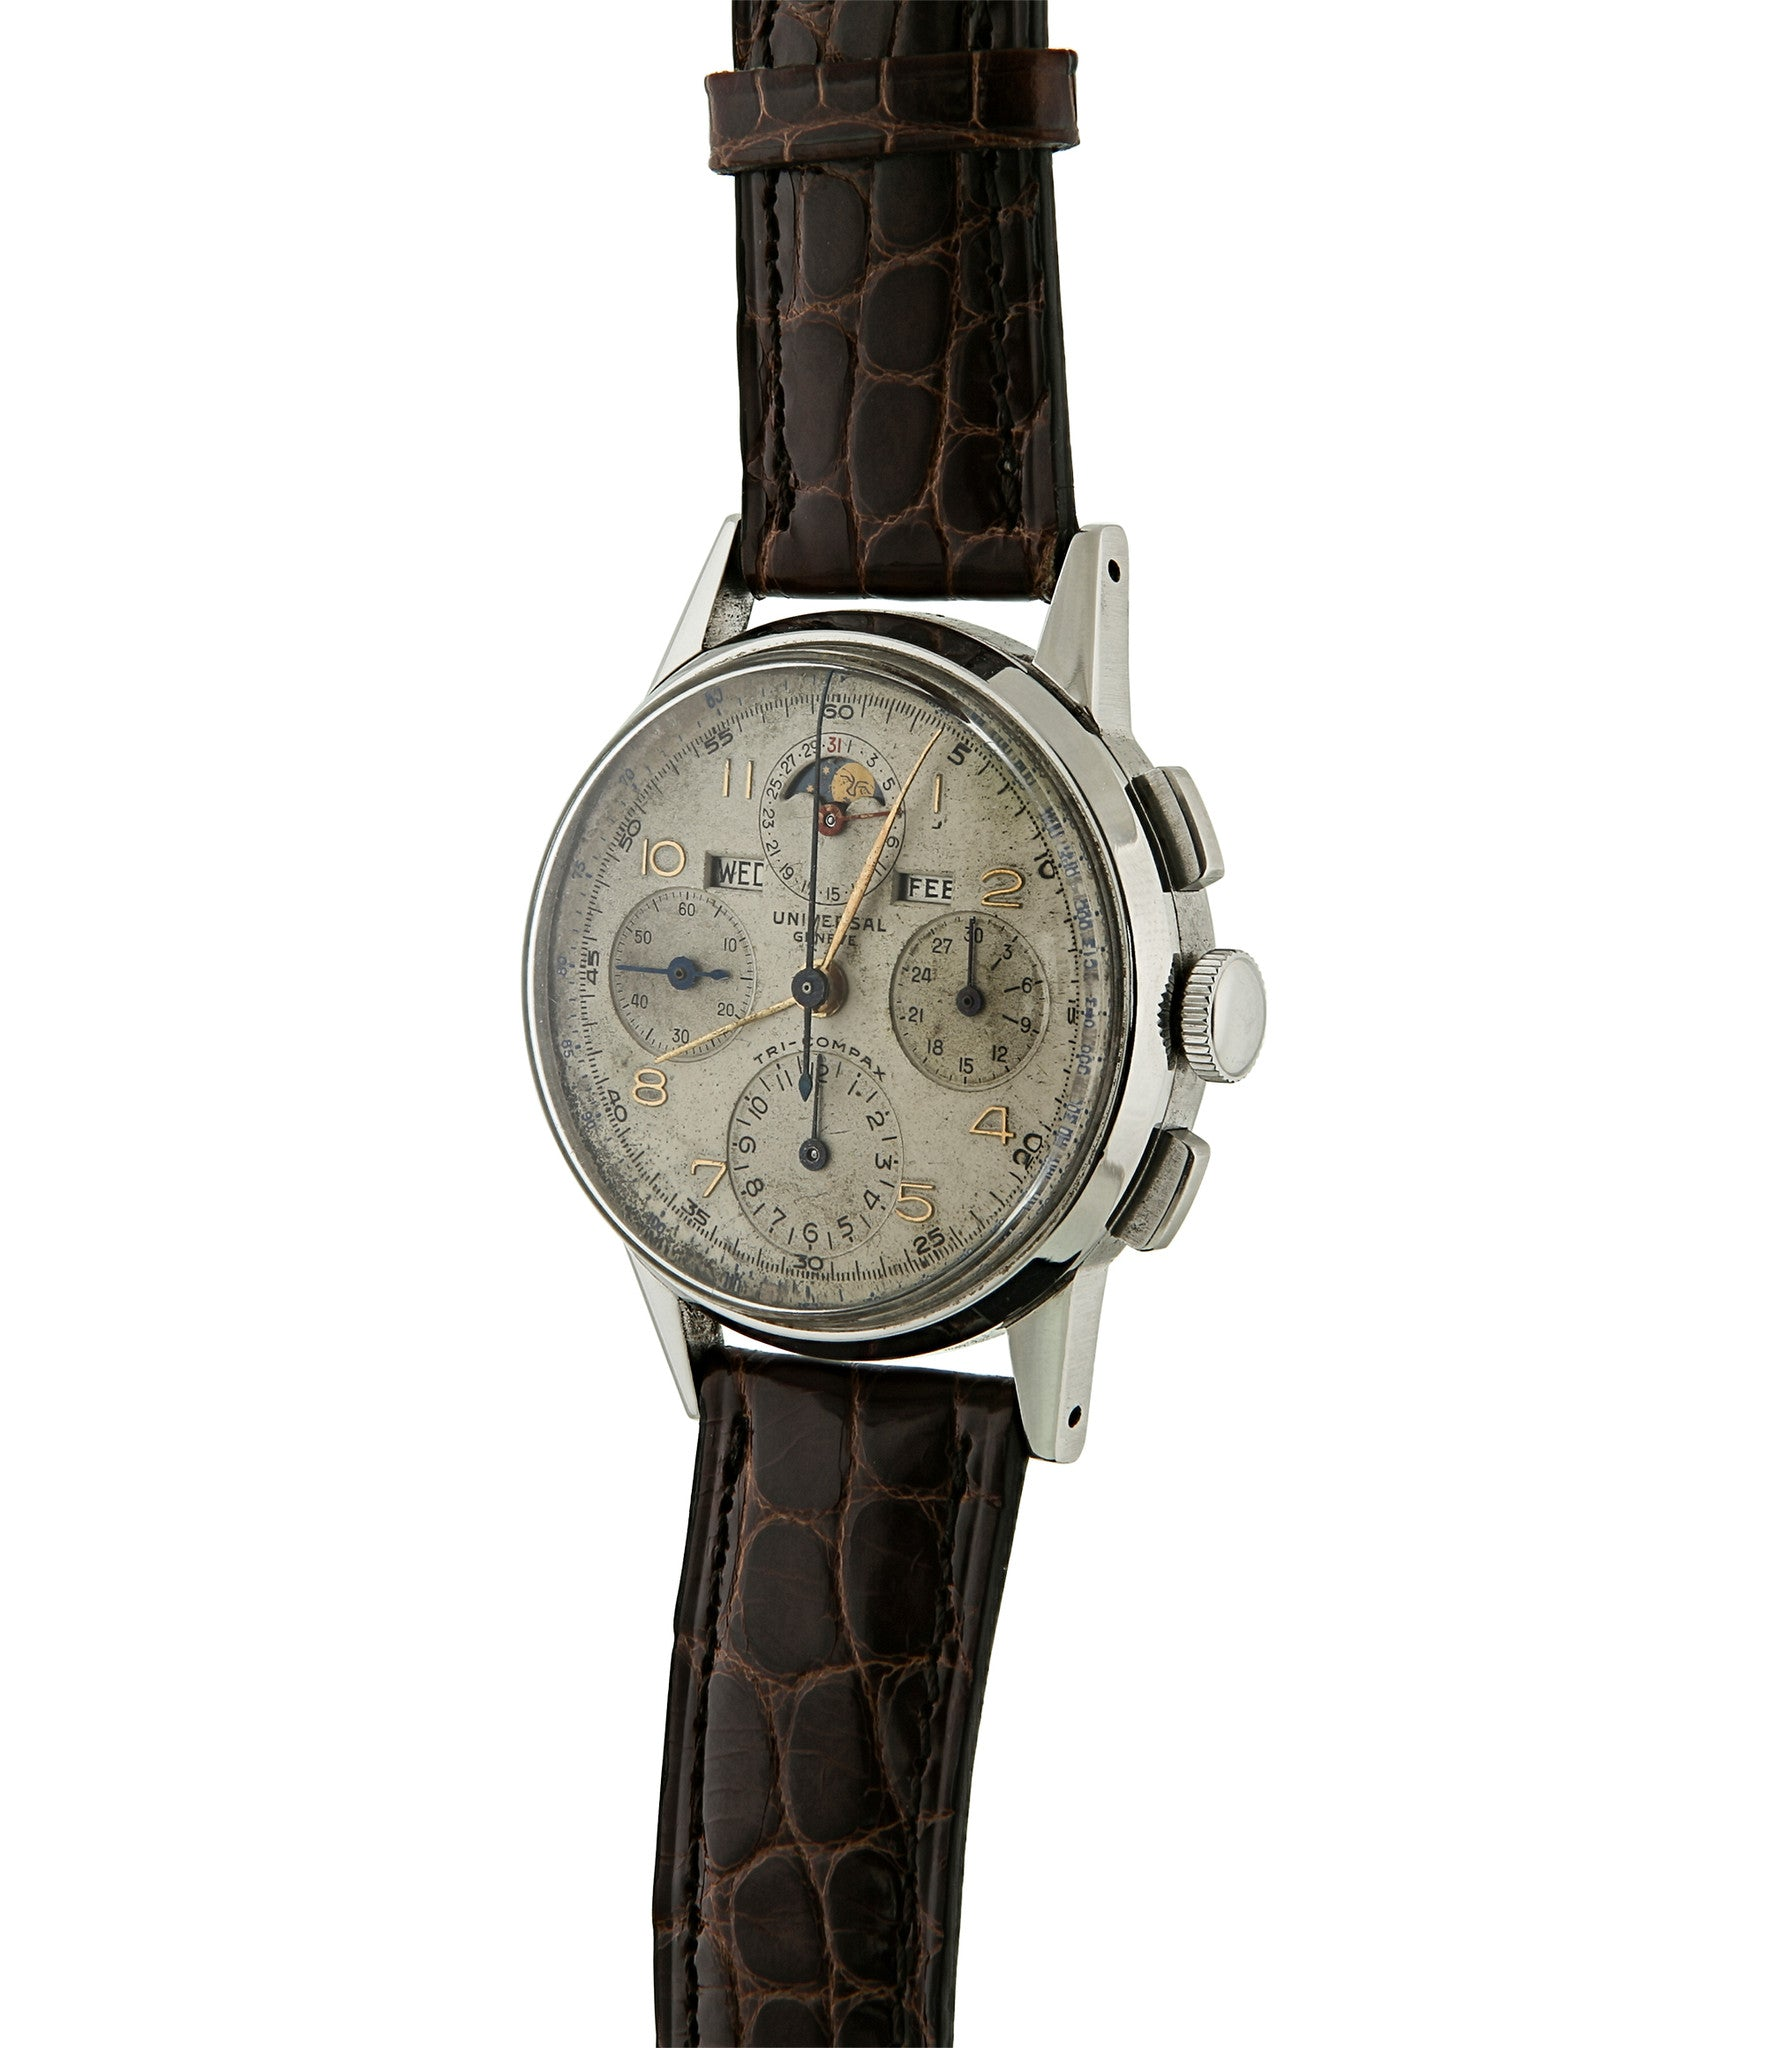 Universal Genève Tri-Compax 22536 oversized steel manual-winding Cal. 287 vintage authentic pre-owned chronograph